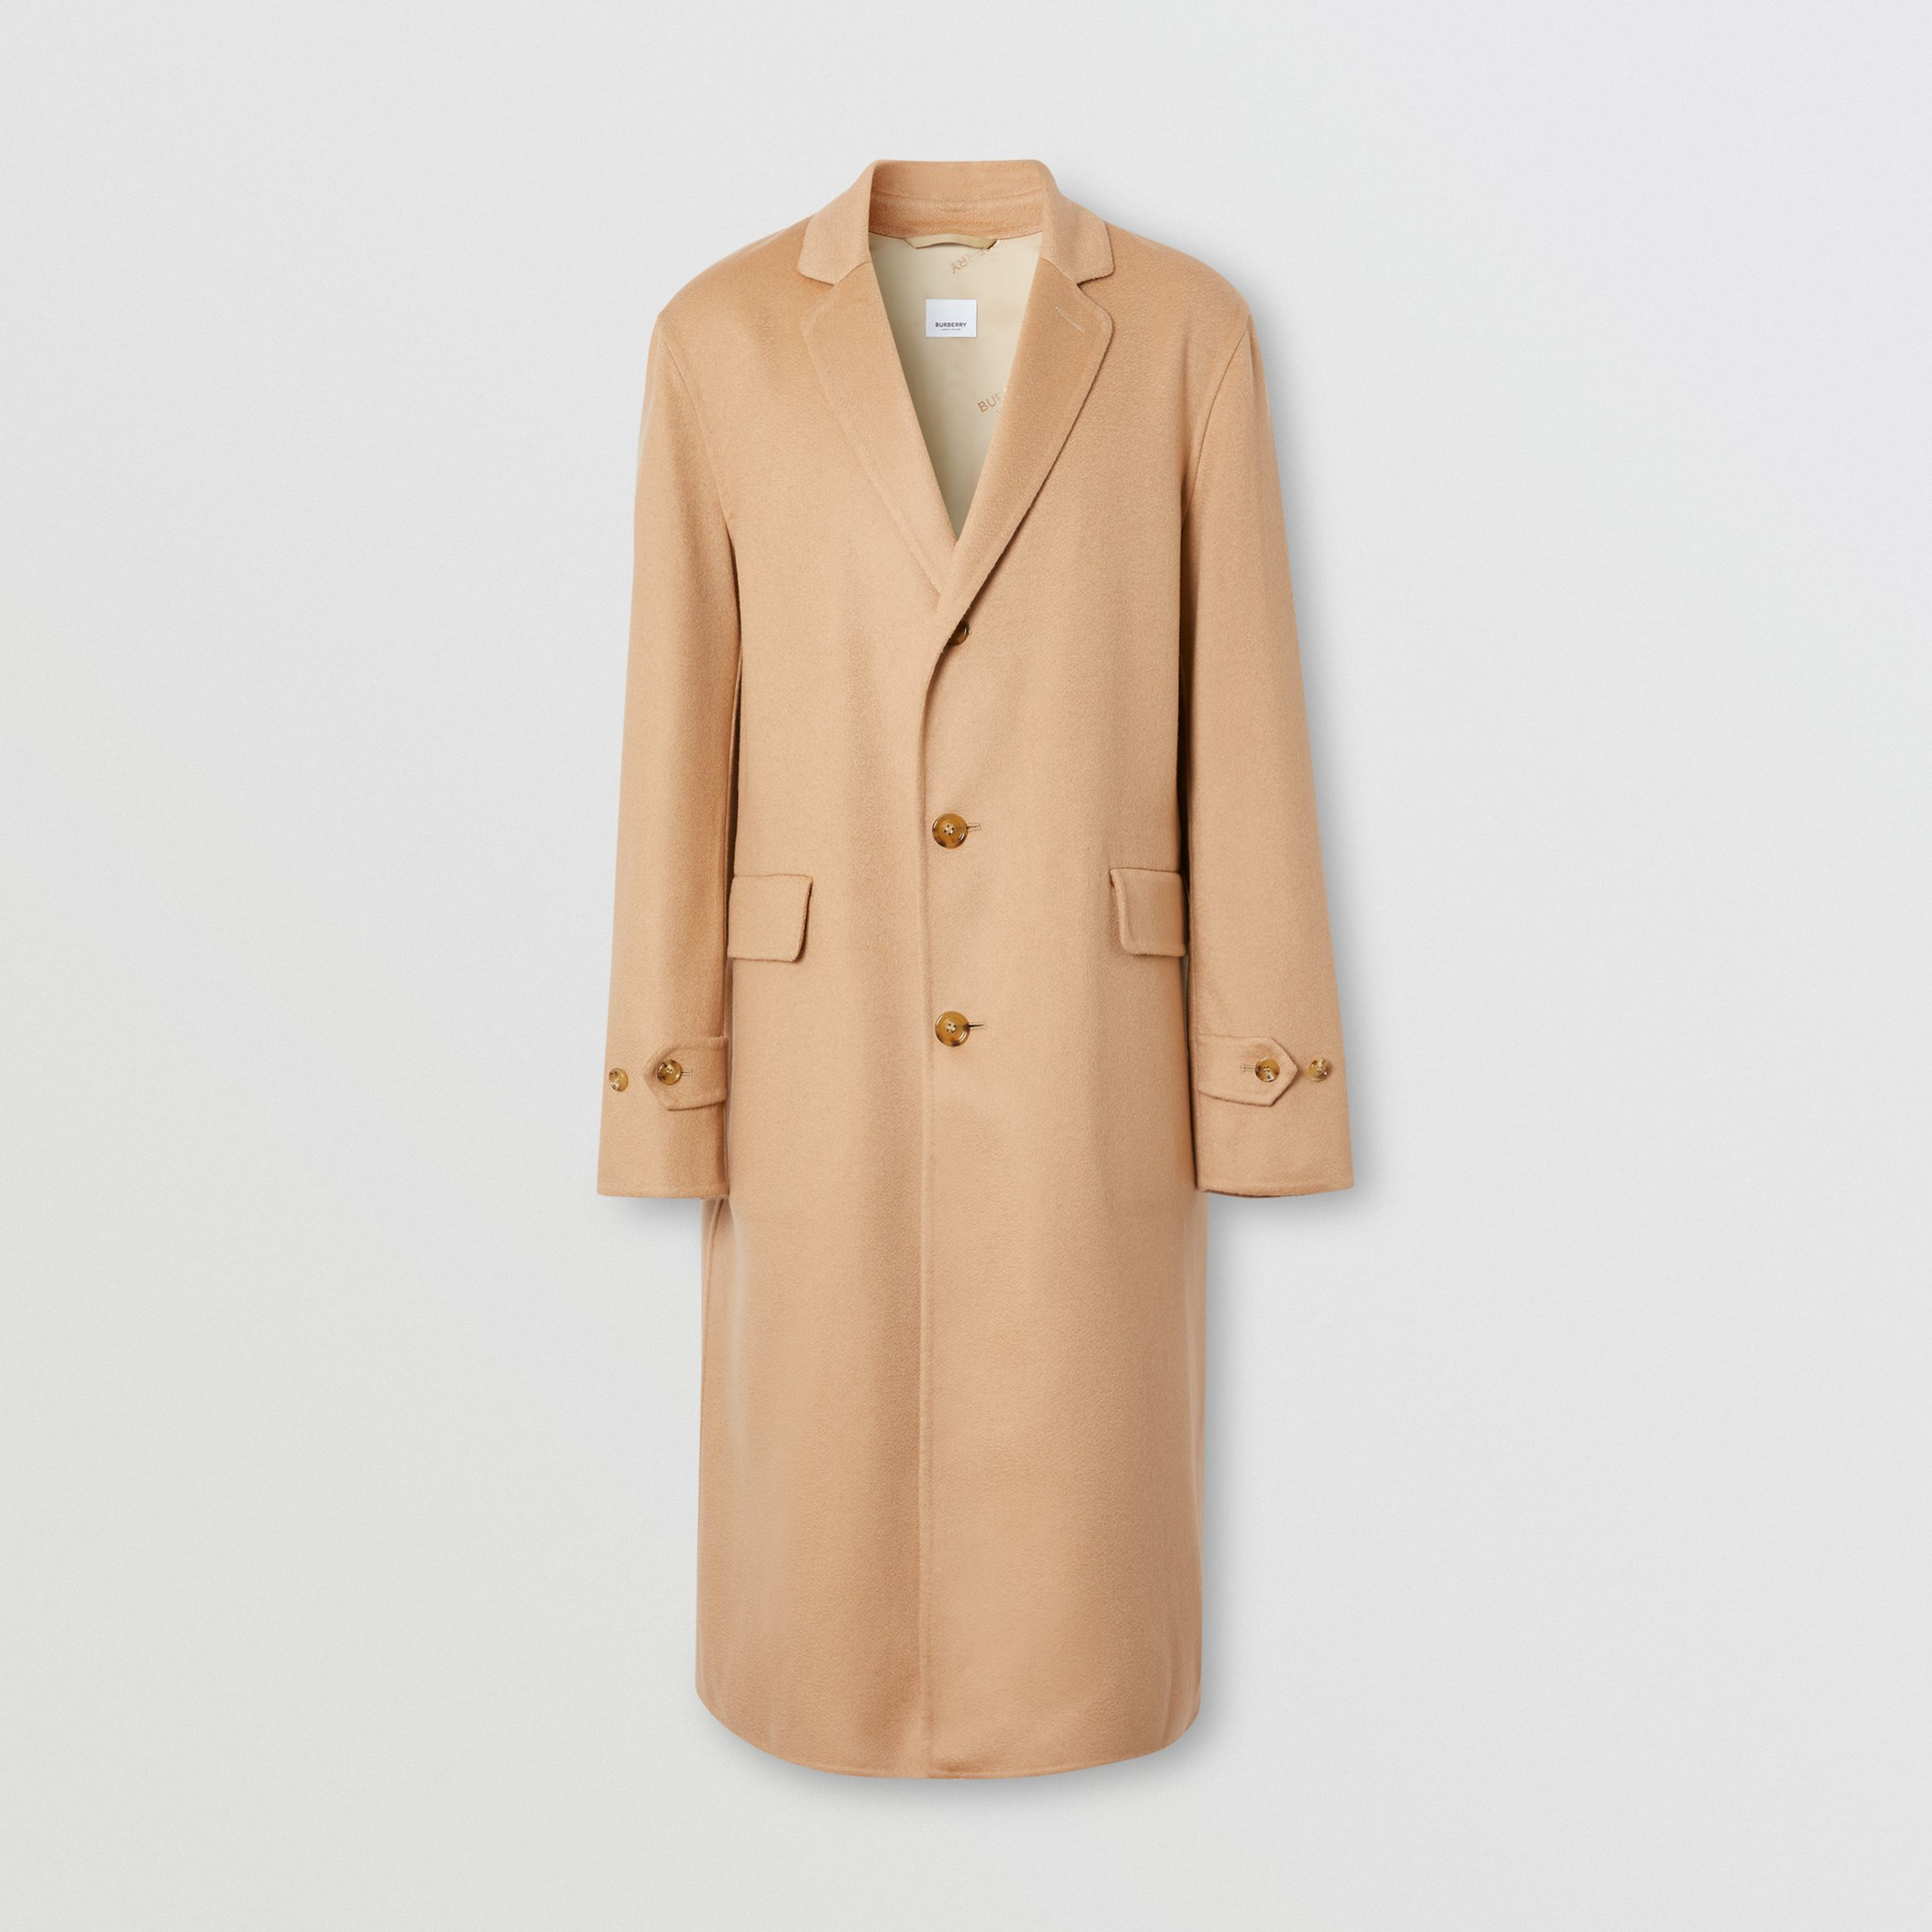 Double-faced Cashmere Lab Coat in Camel - Men | Burberry - 4